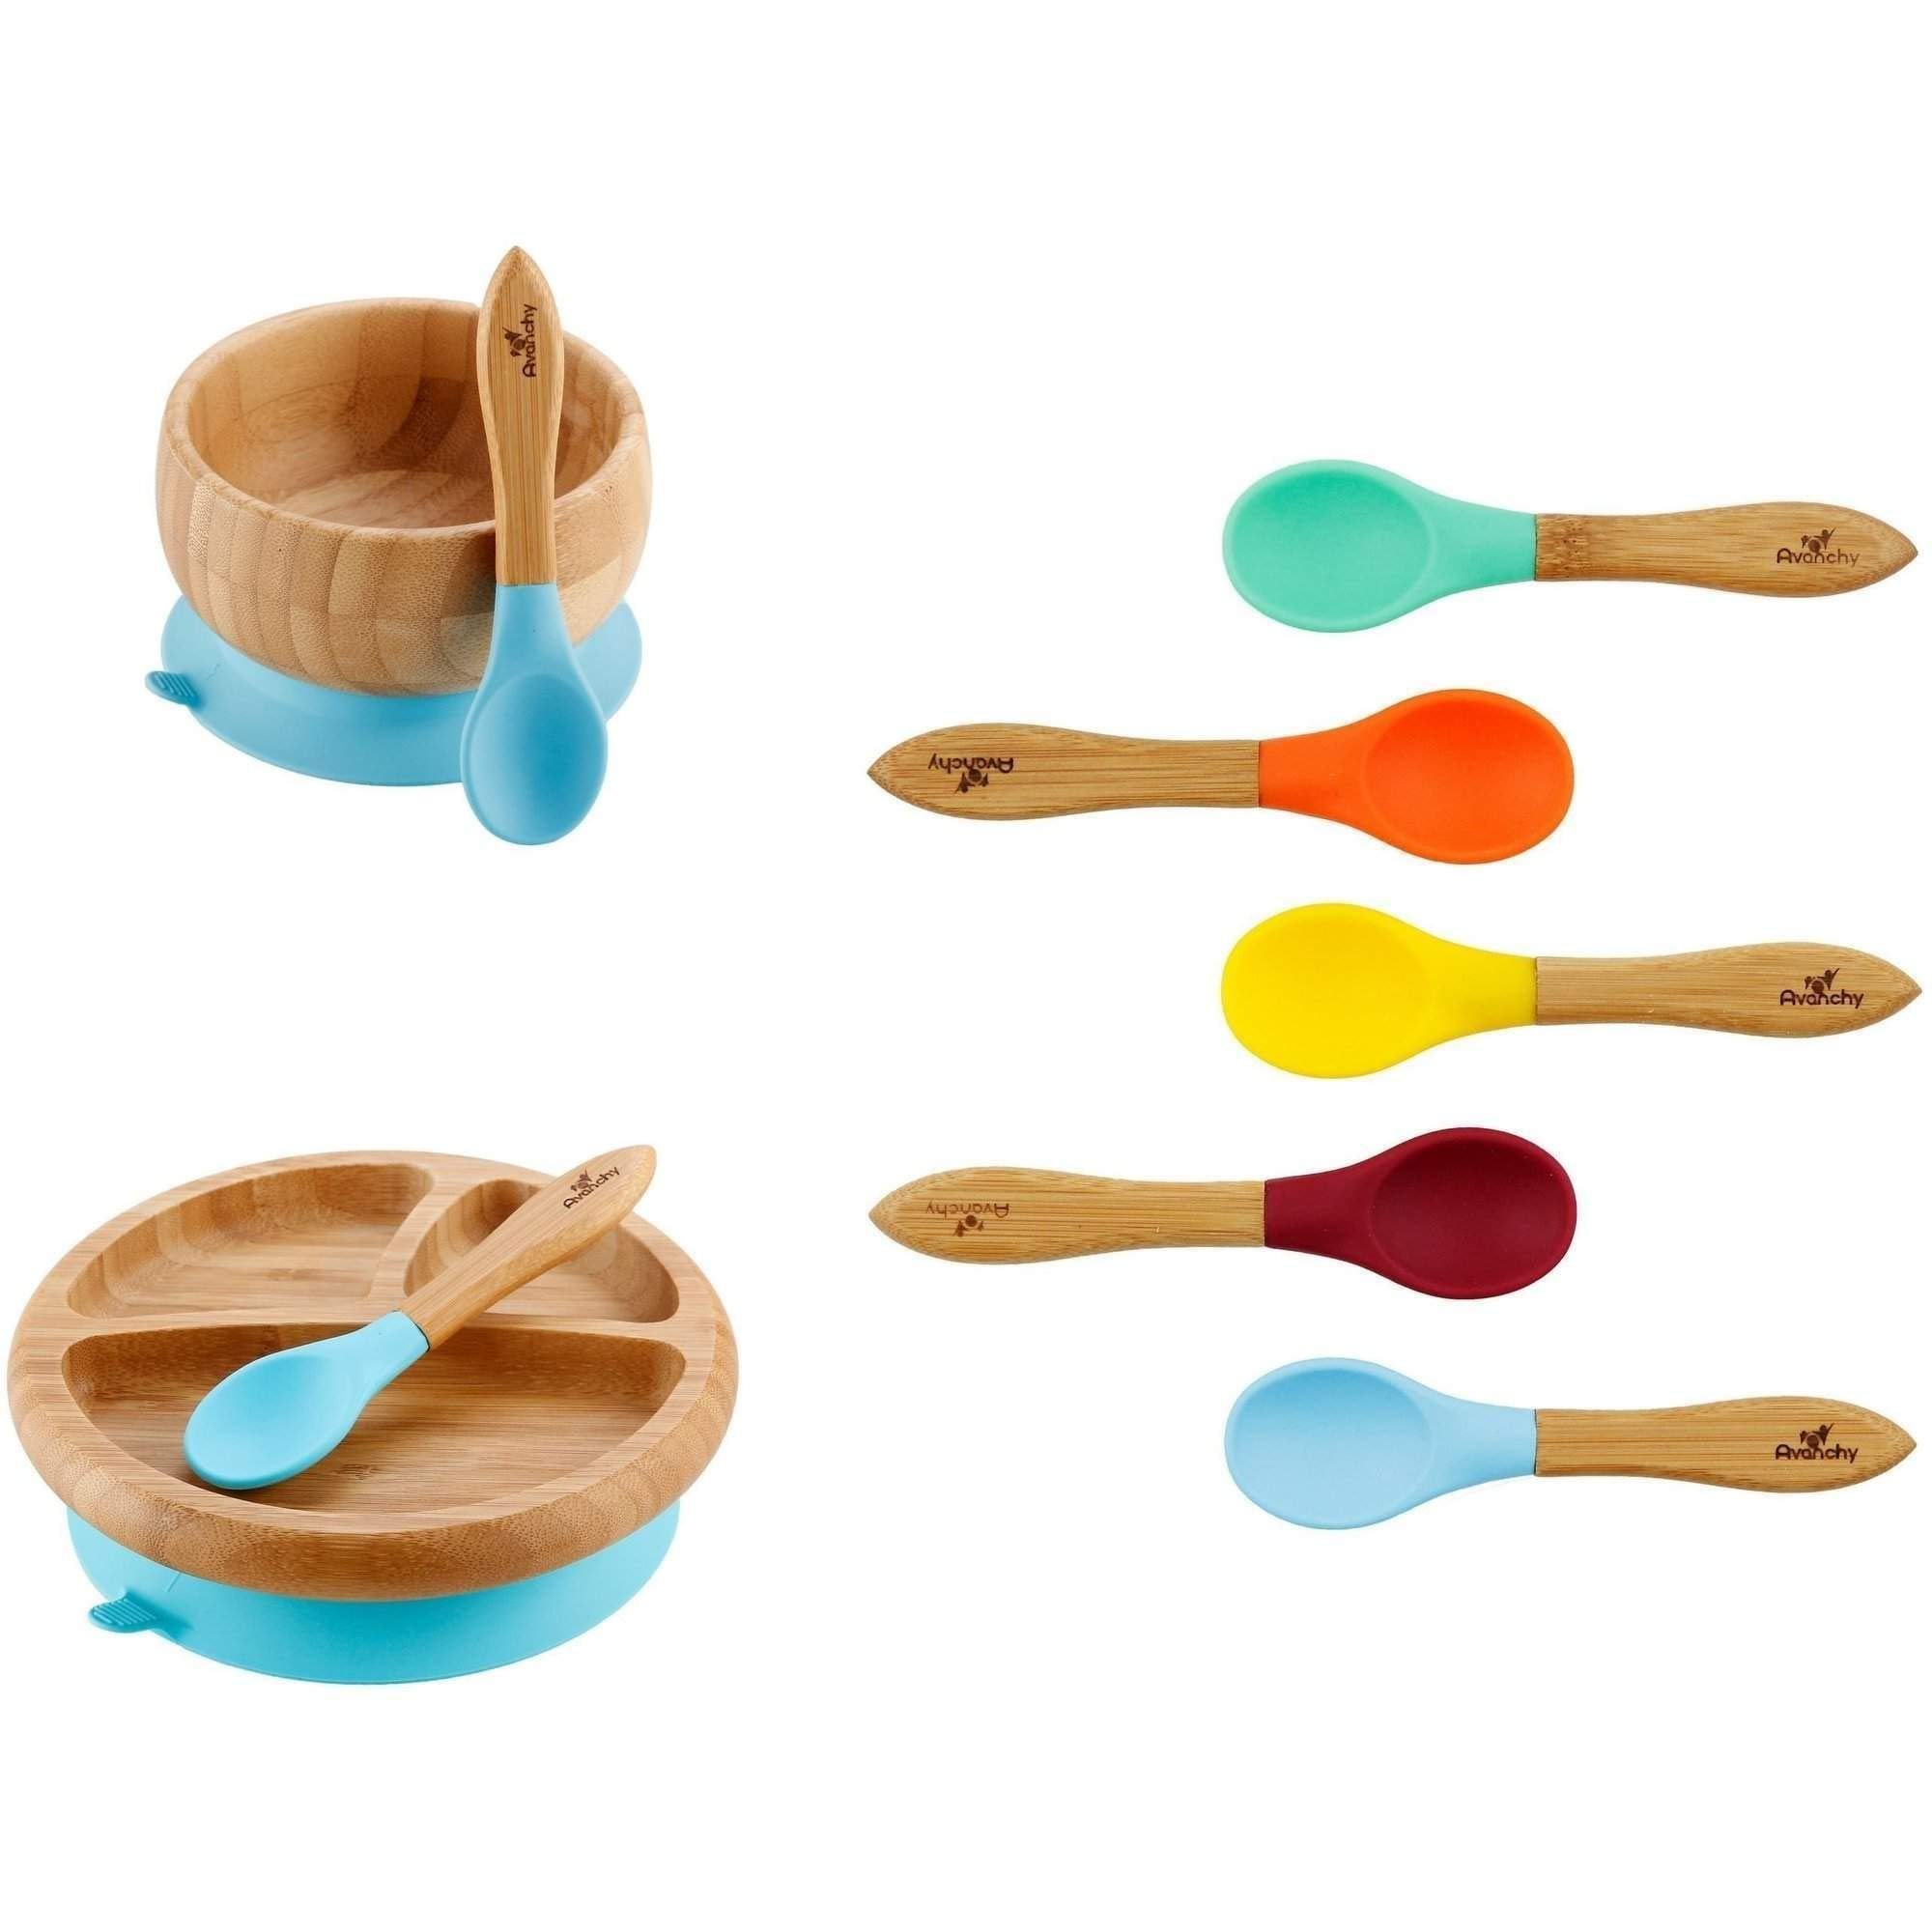 Rainbow Gift Set Blue - Baby Shower, Baby Registry, Home Set & More. Baby Girl, Baby Boy, Unisex. Baby Bowl Set + Baby Plate Set + Assorted Baby Spoons Set. BPA Free